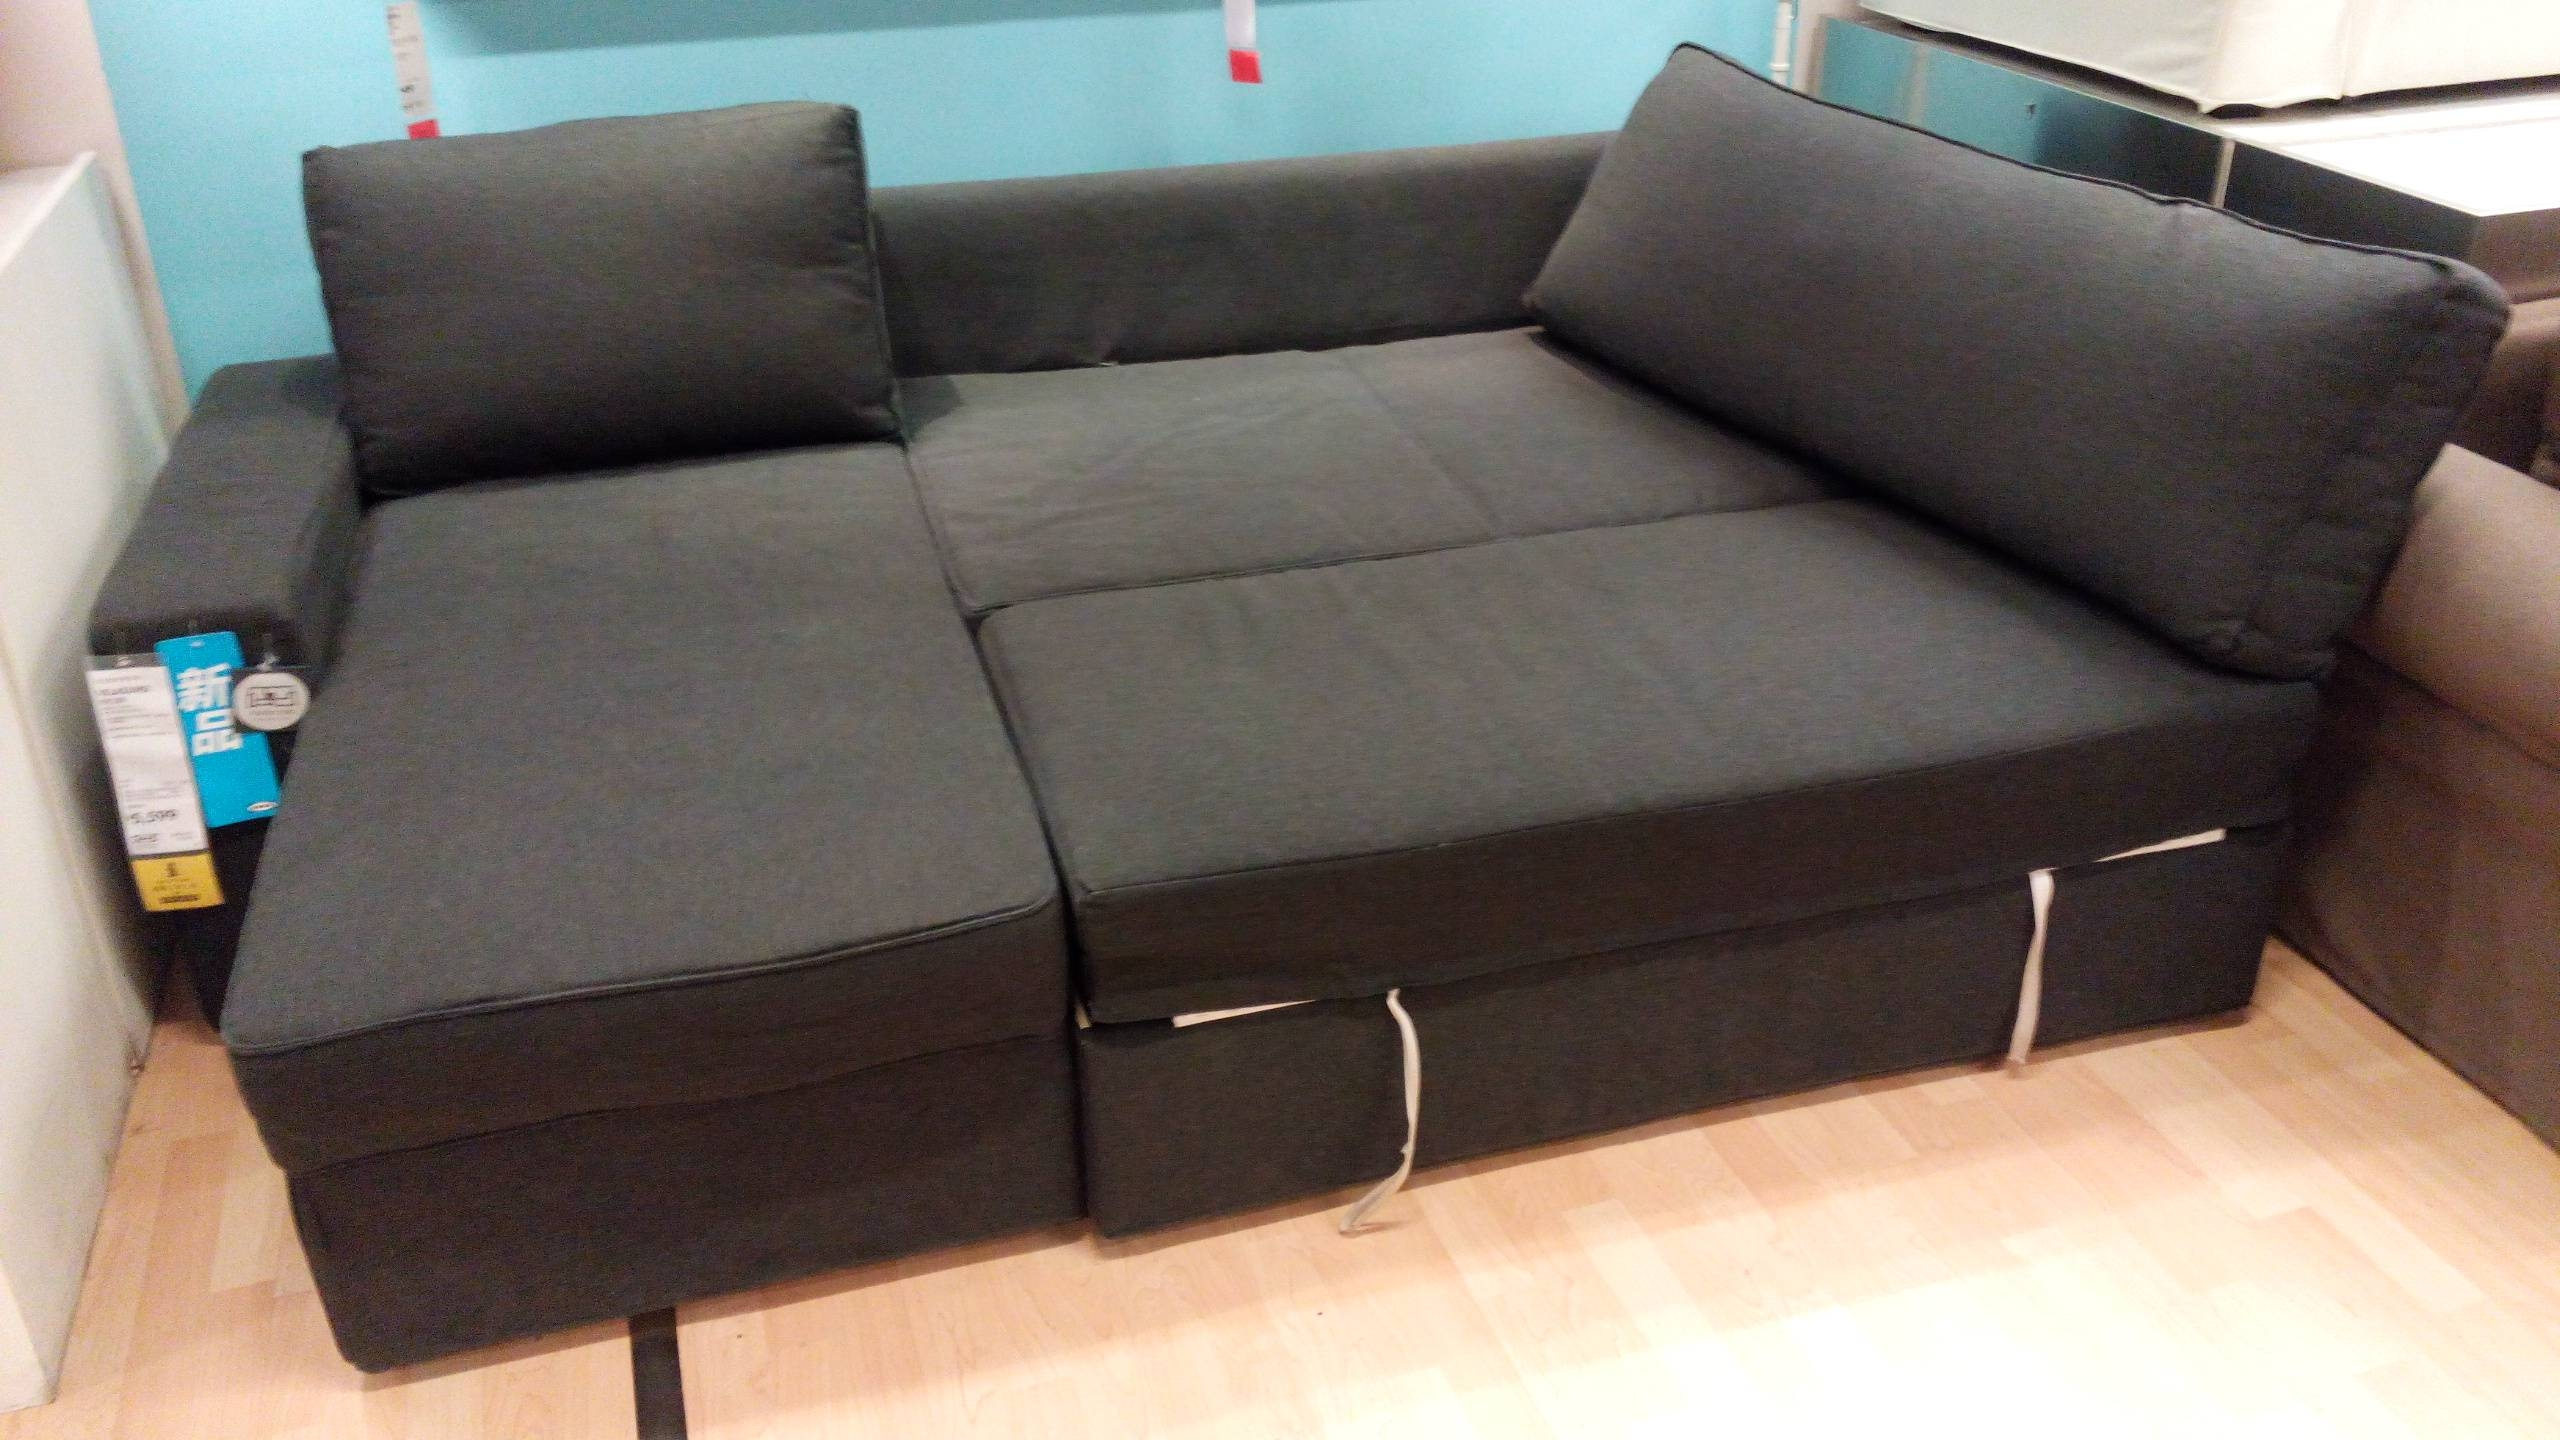 sofa bed with storage. Fresh Manstad Sectional Sofa Bed Storage From Ikea 42 For Your With